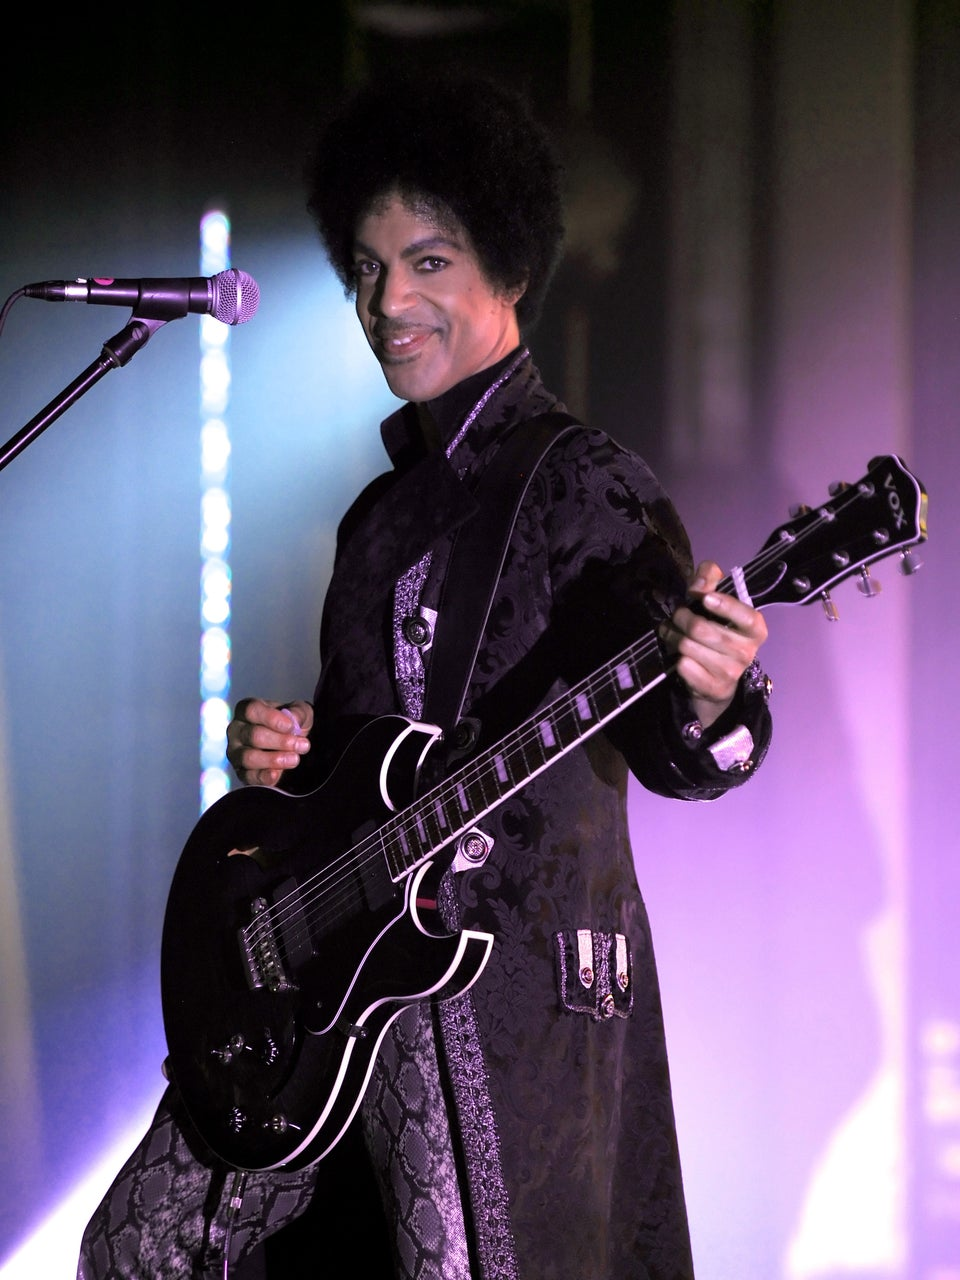 Will Prince's Paisley Park Home Become a Museum?